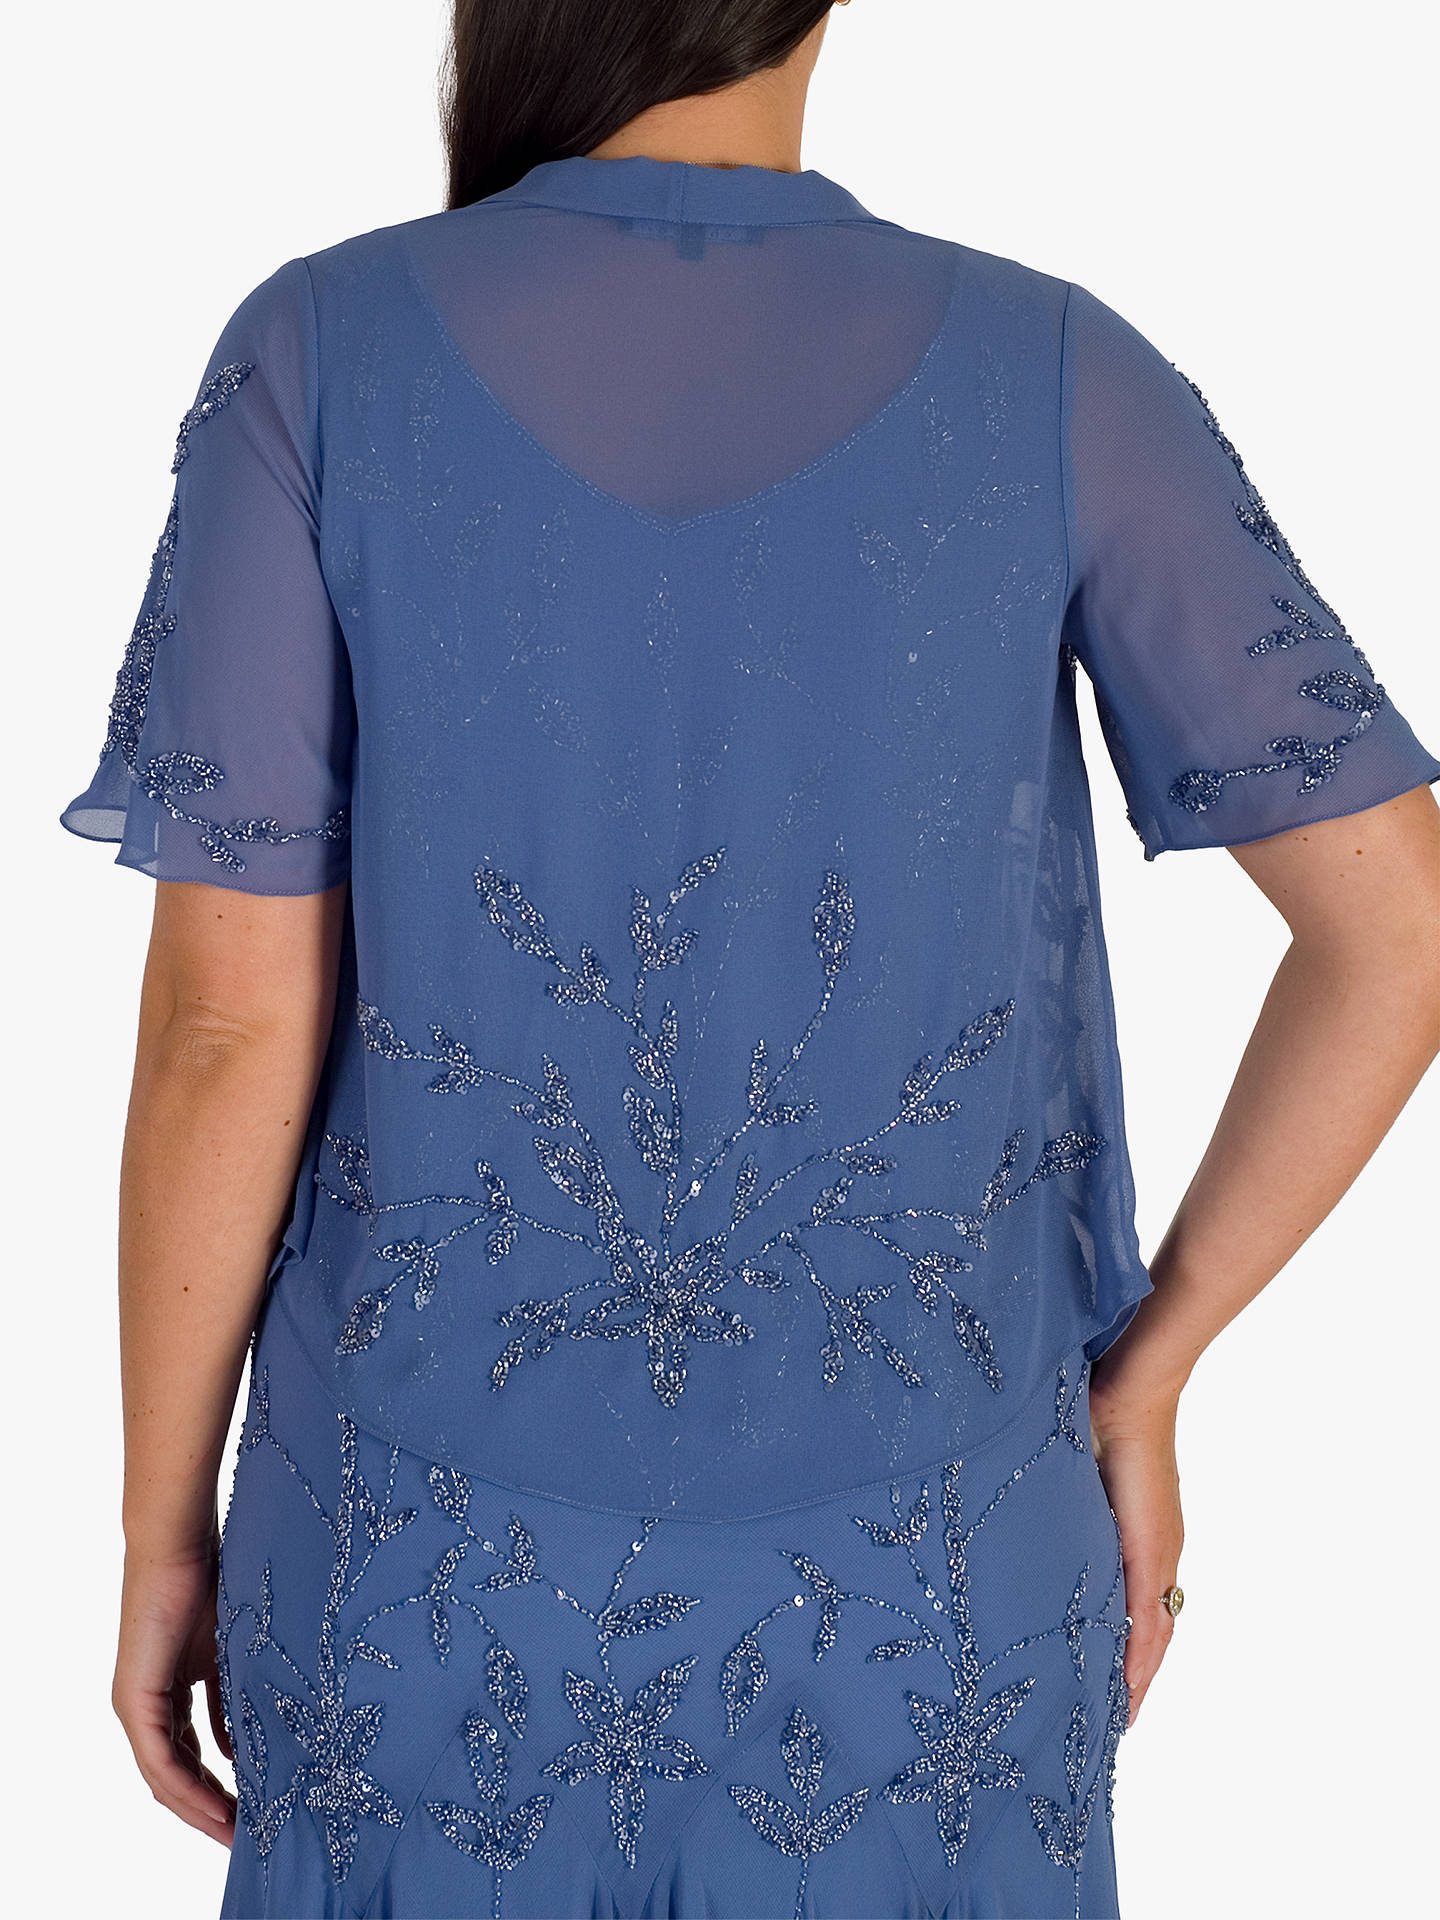 BuyChesca Iris Beaded Jacket, Blue, 18 Online at johnlewis.com